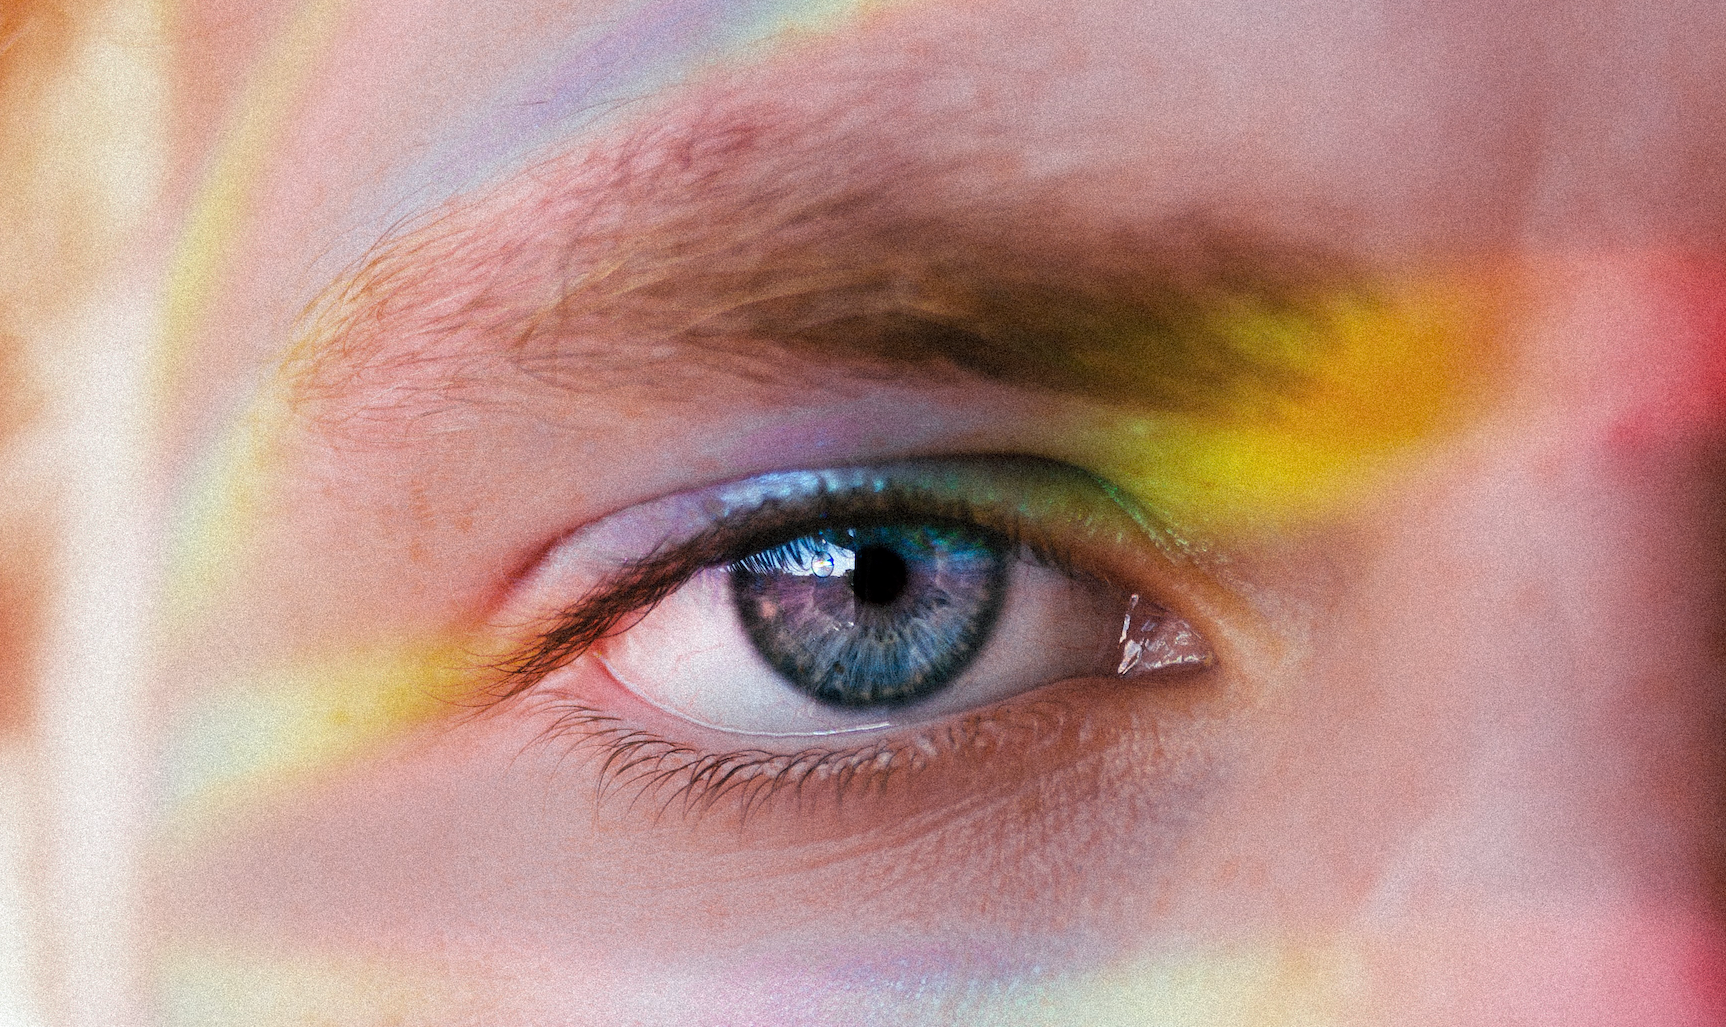 A close up a man's left eye with a rainbow reflecting on his face.